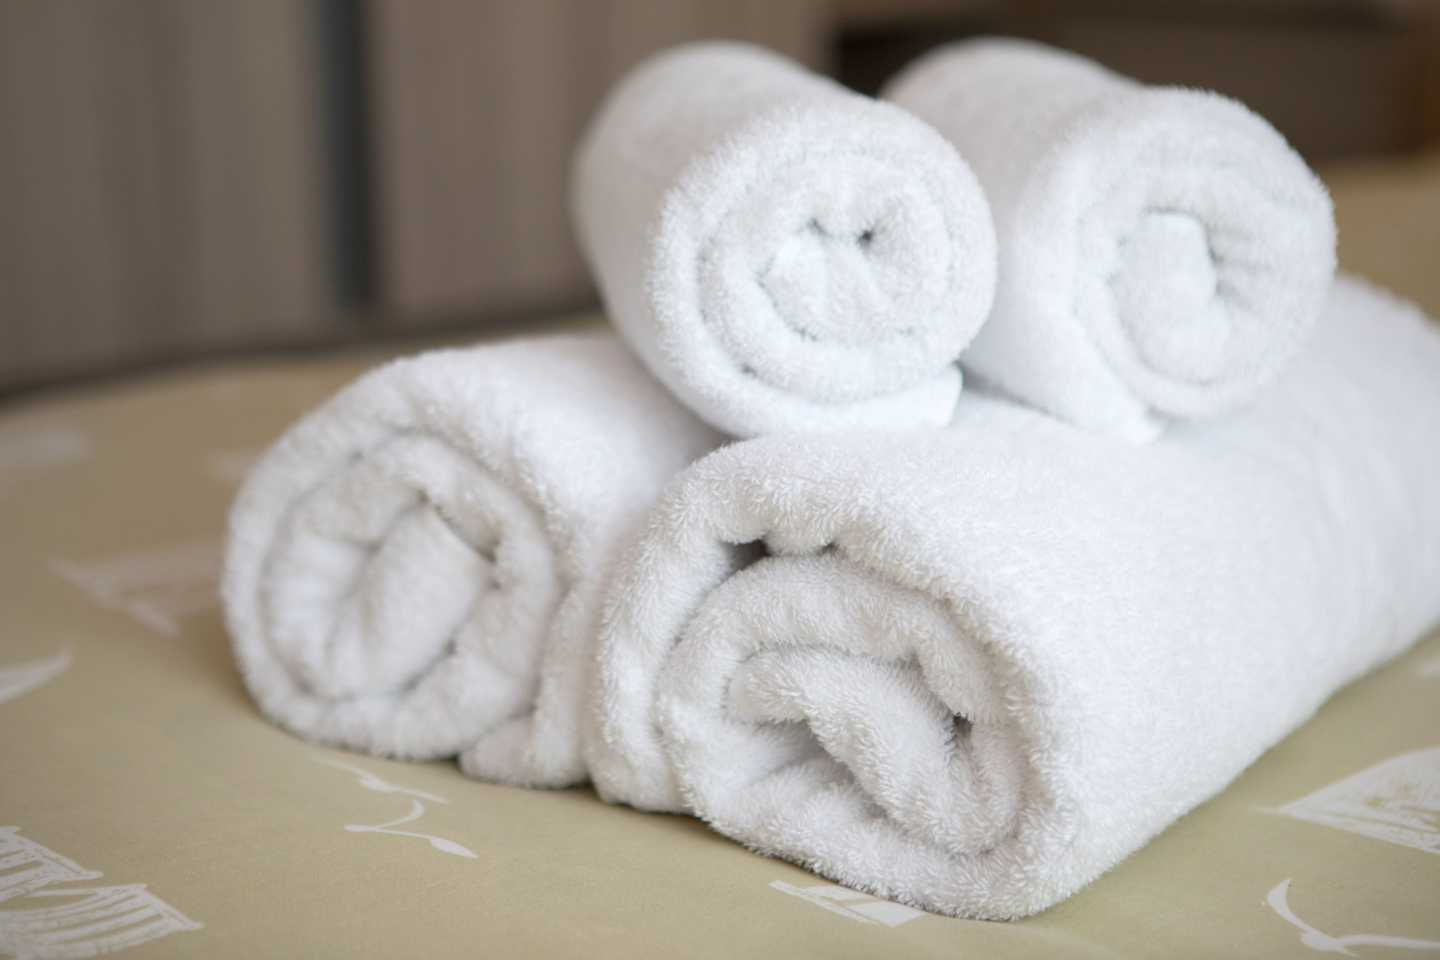 Towel bale on a bed